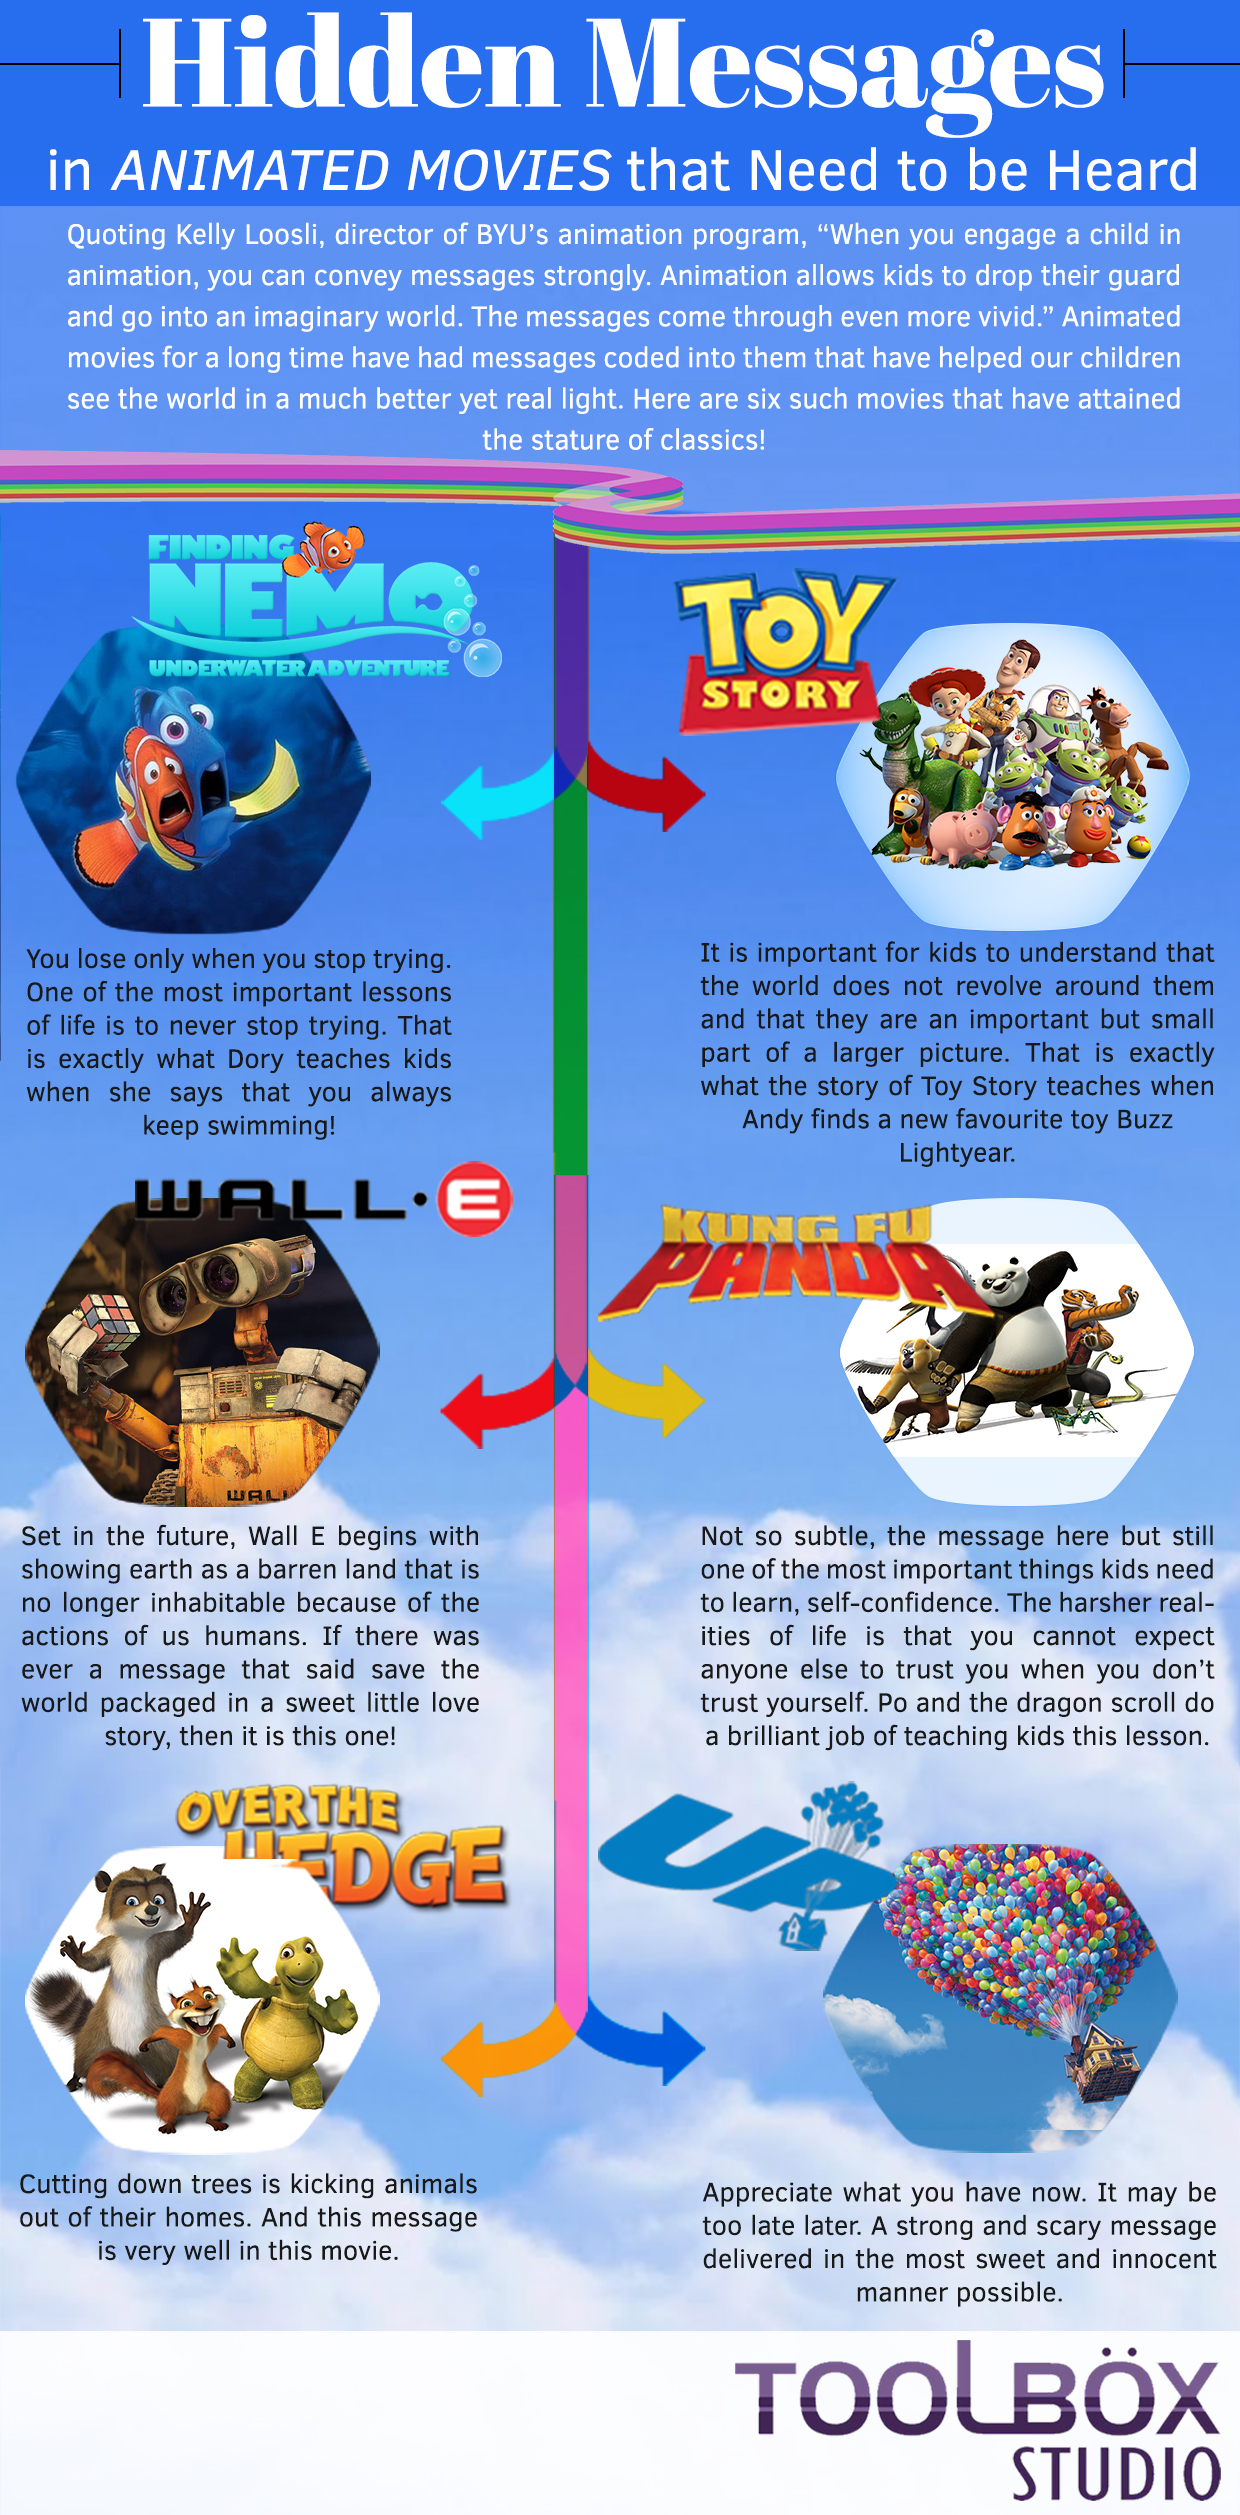 hidden messages in animated movies